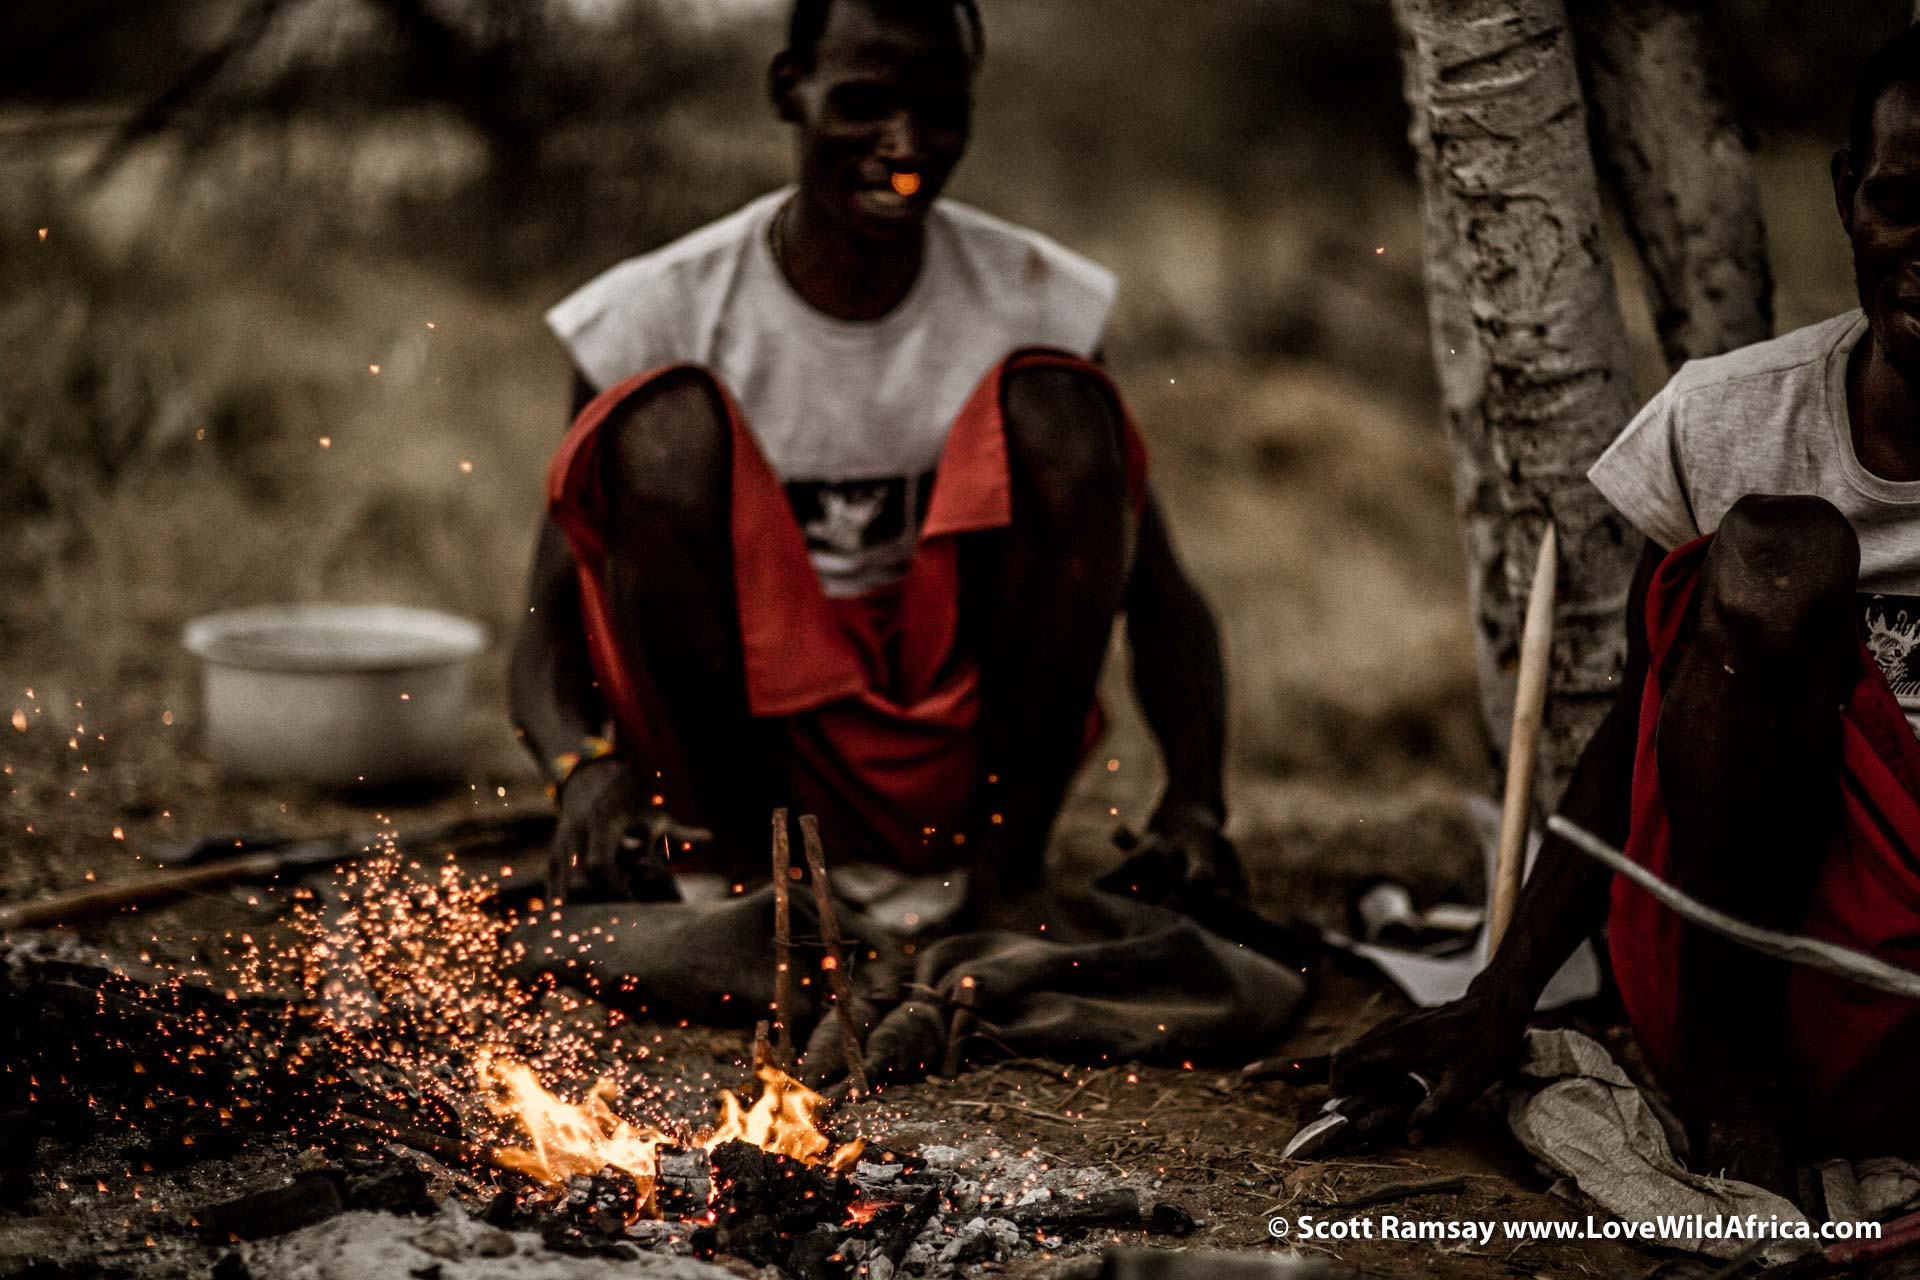 Mikey had found two Samburu blacksmiths, some of the last traditional blacksmiths in the region. And they are expert spear makers.